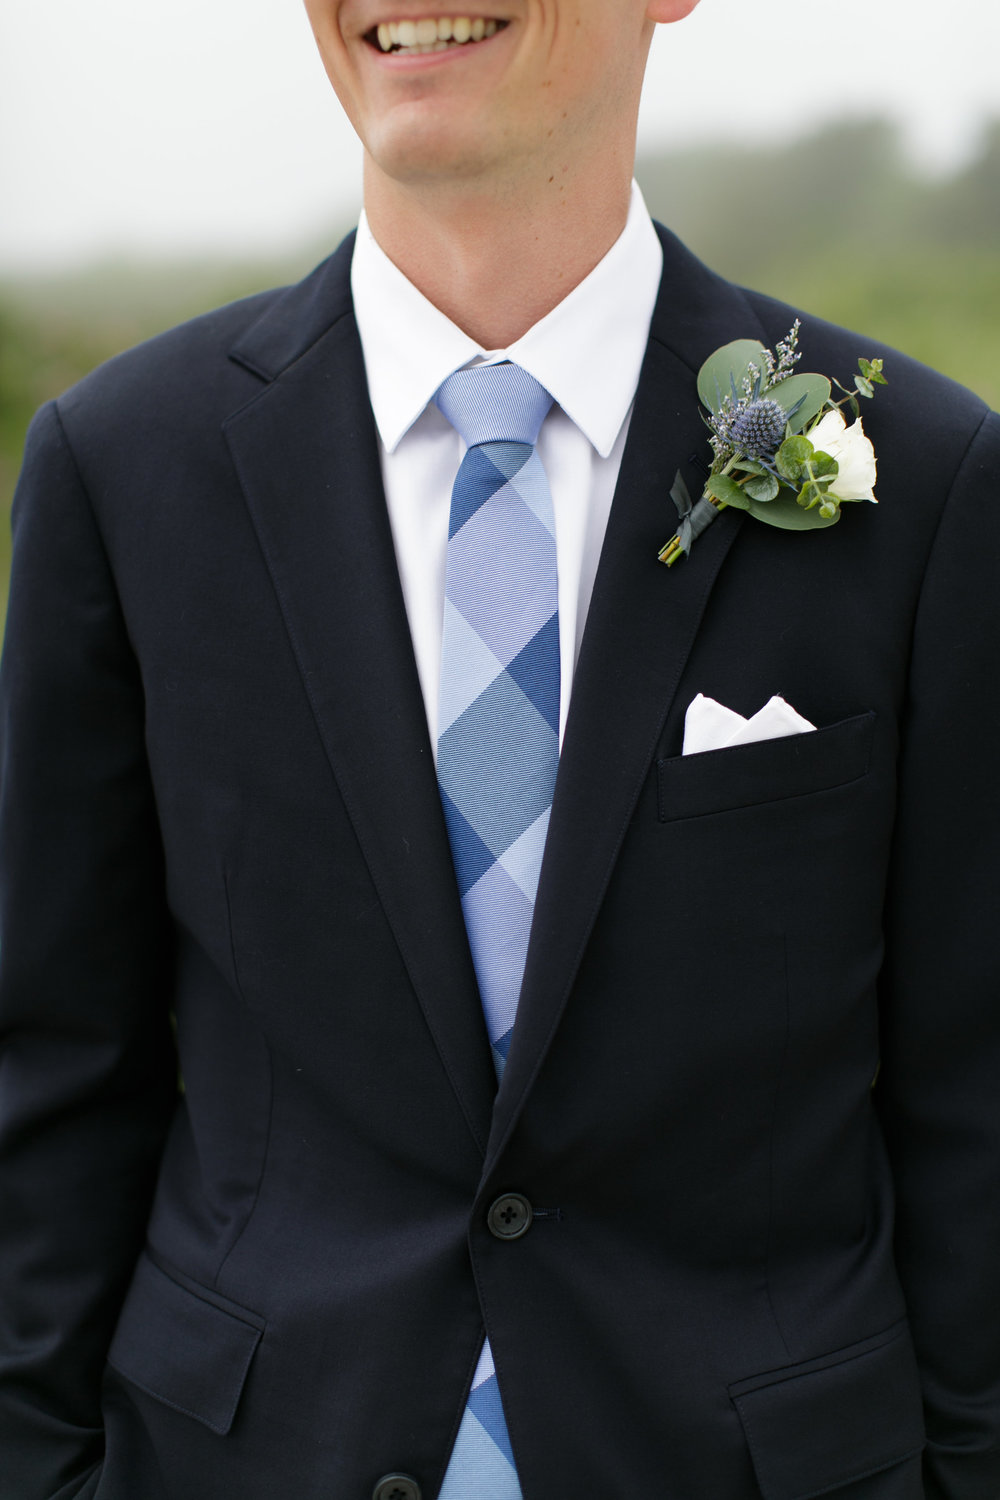 Watershed-Floral-Maine-Wedding-Boutonniere.jpg